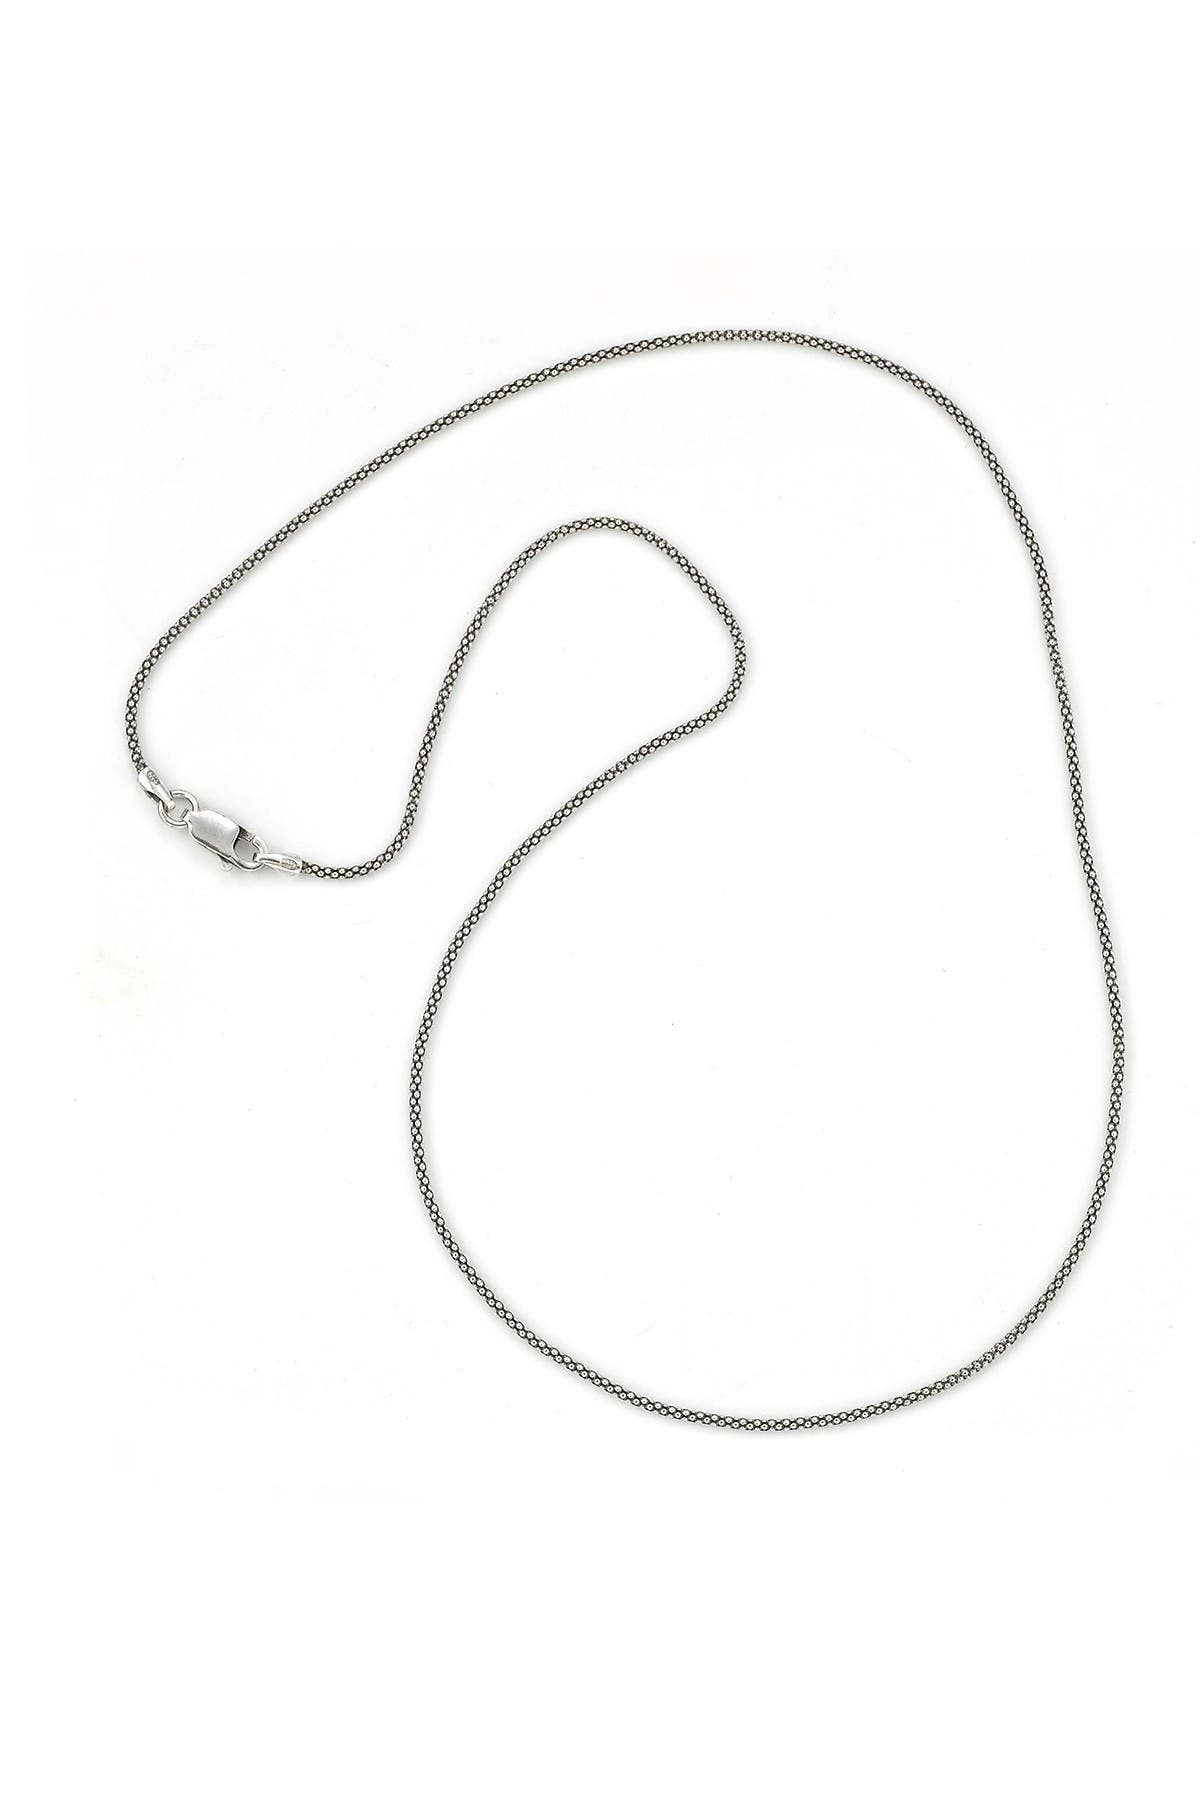 Image of Samuel B Jewelry Oxidized Sterling Silver Popcorn Chain